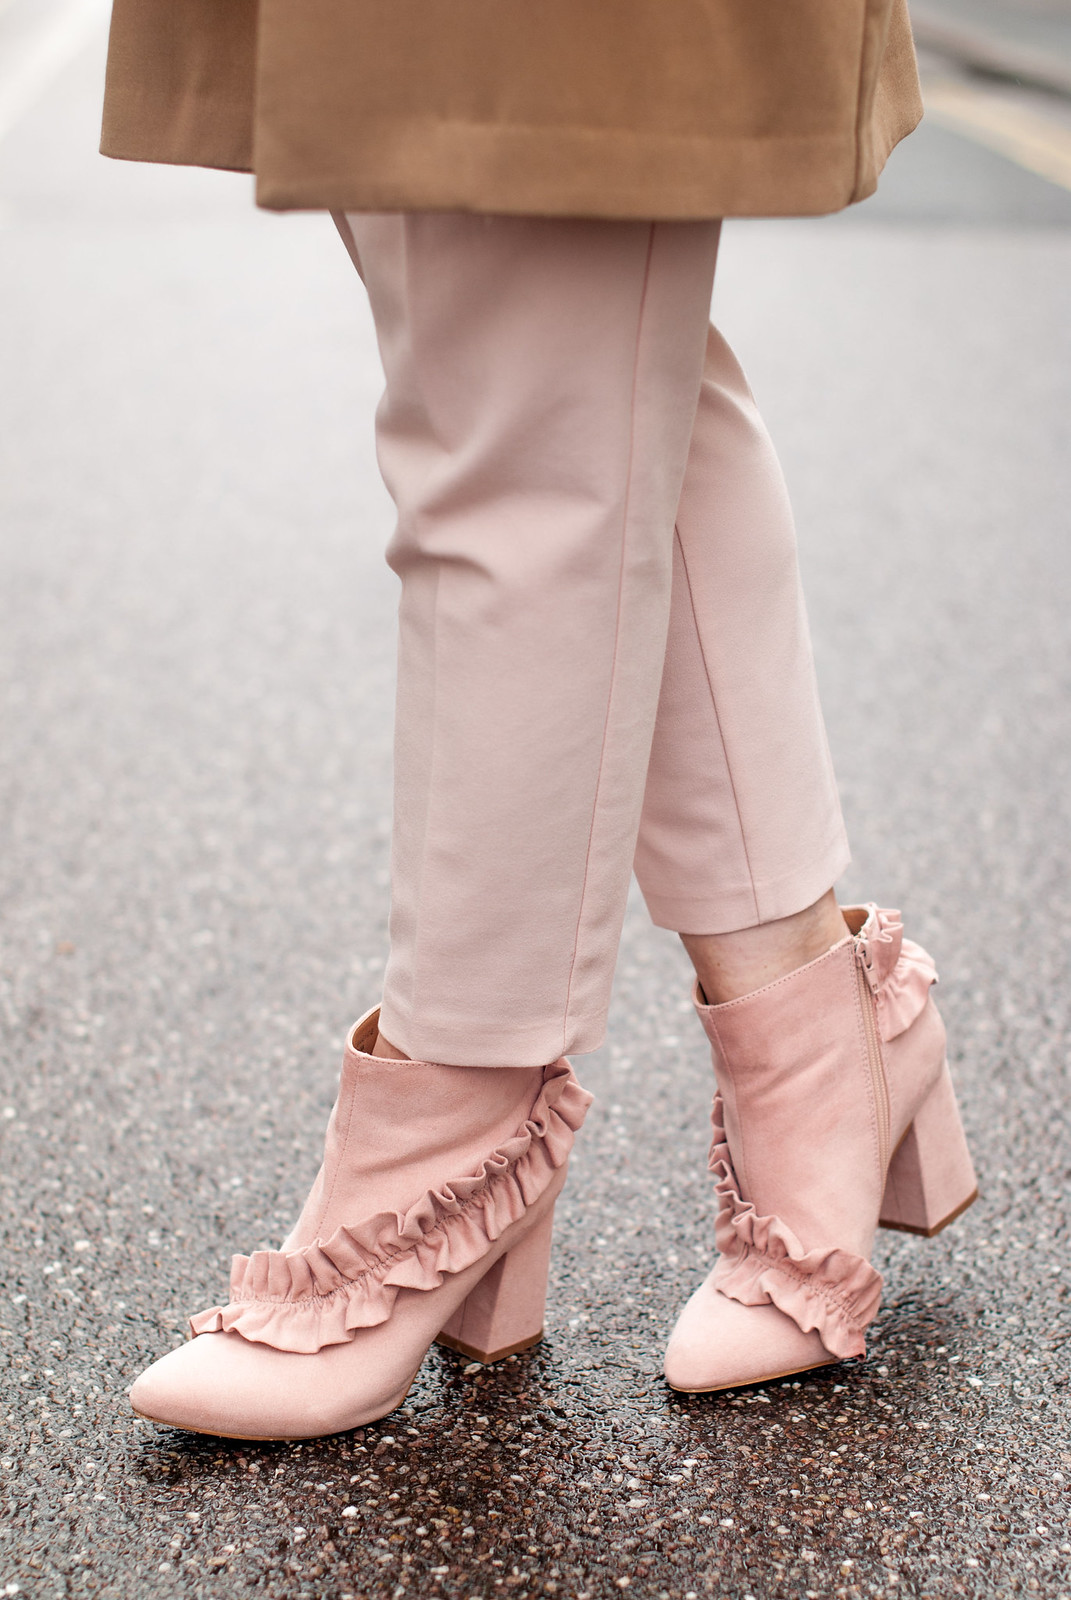 Easter outfit of pastels: Ruffled yellow blouse \ longline camel blazer \ pastel pink peg leg trousers \ tapered pants \ pink ruffle ankle boots | Not Dressed As Lamb, over 40 style